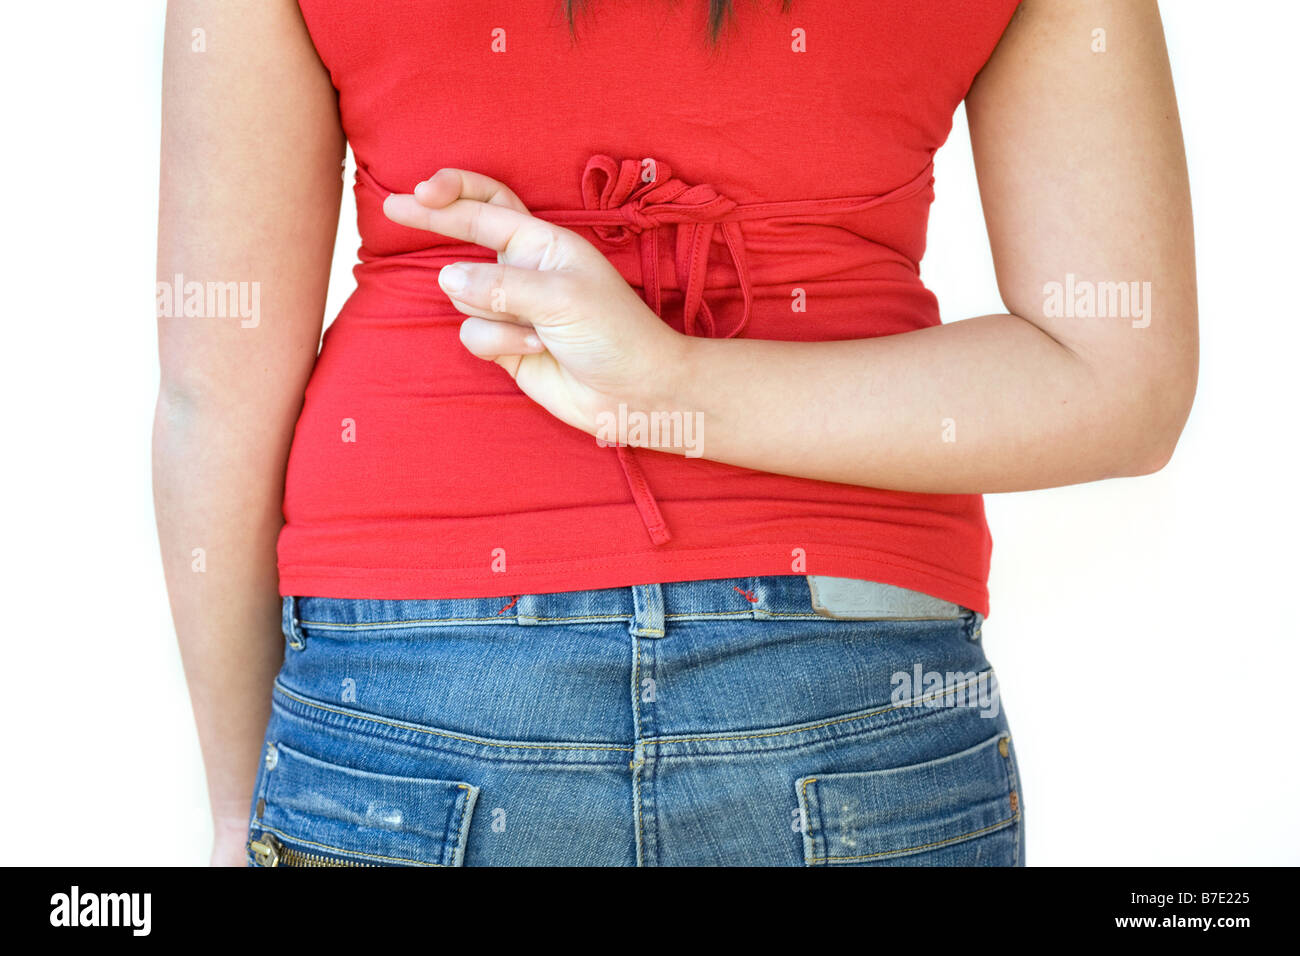 teenage girl seen from behind with her fingers crossed behind her back - Stock Image